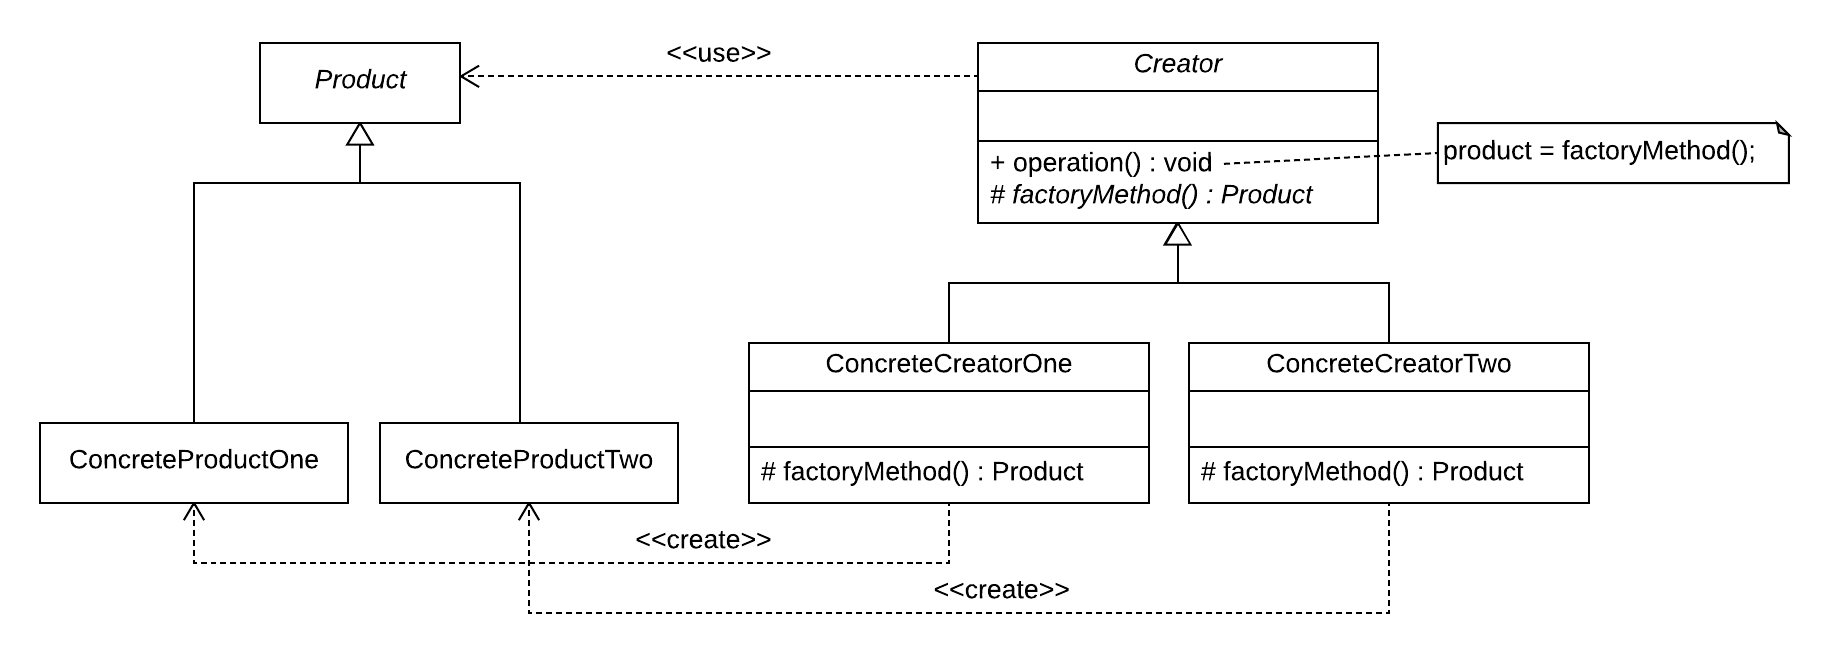 UML Diagram from Design Patterns: Elements of Reusable Object-Oriented Software book.